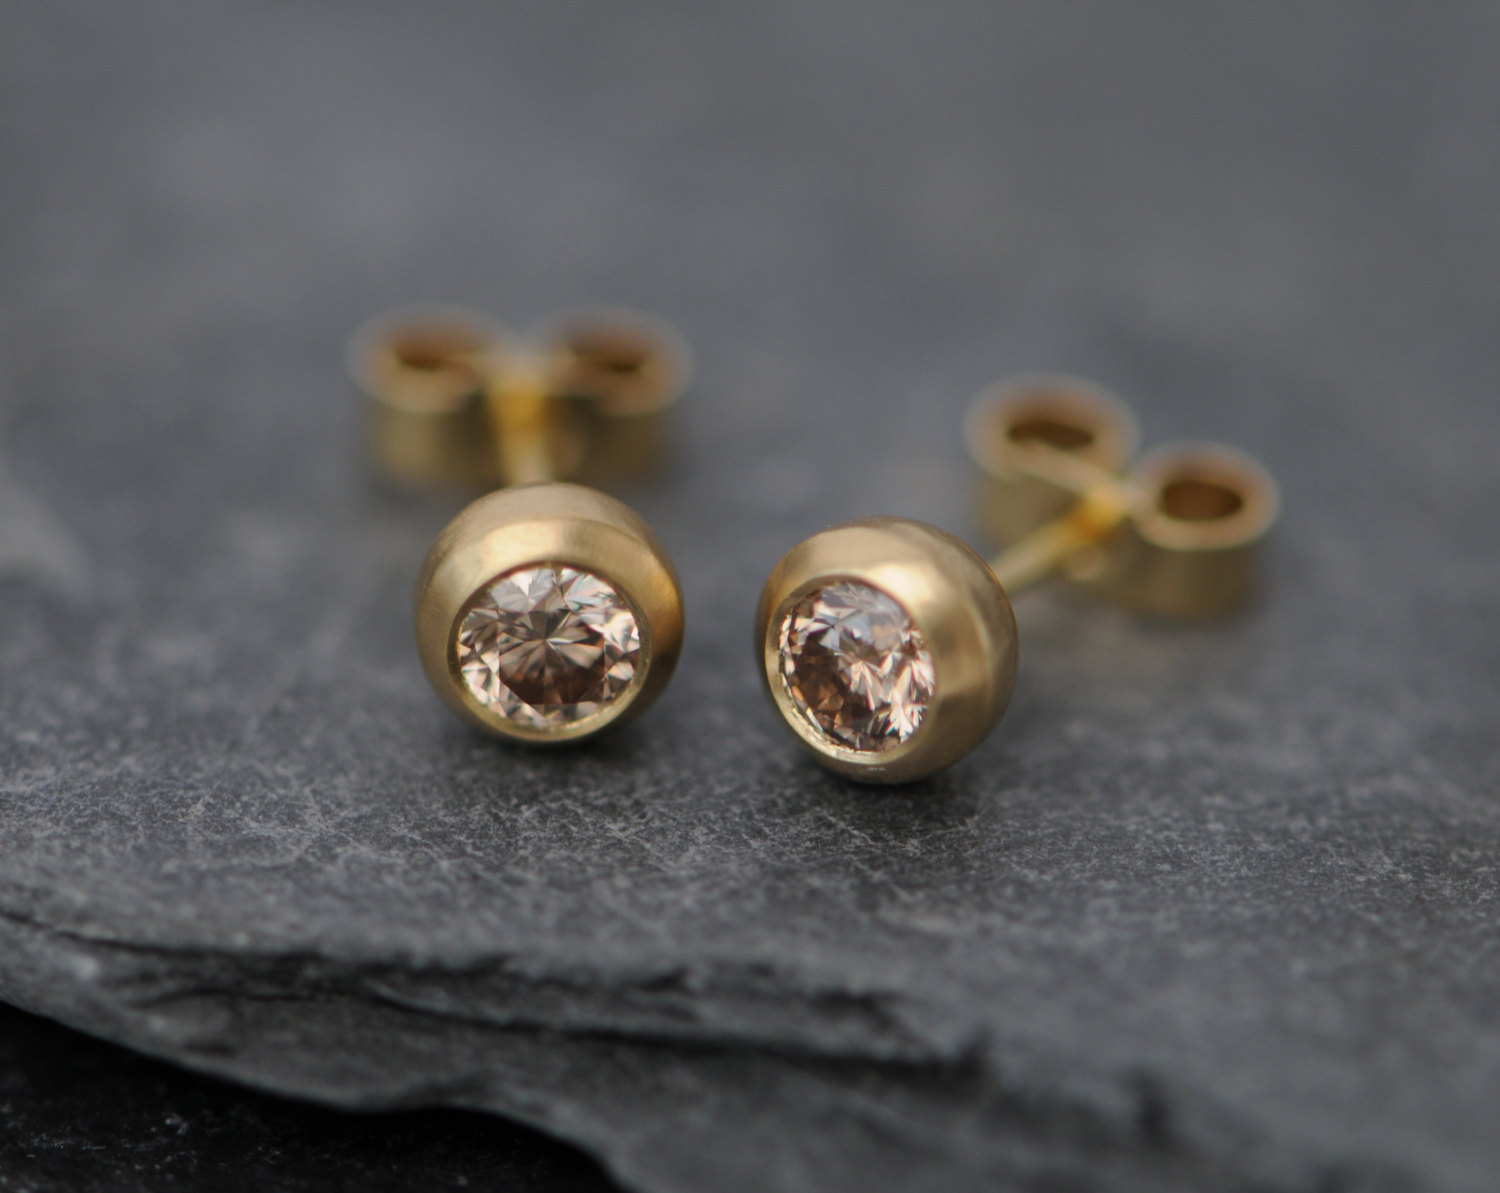 brown white prod cognac earrings champagne stud src s diamond search com gndjewelry thejewelrymaster studs